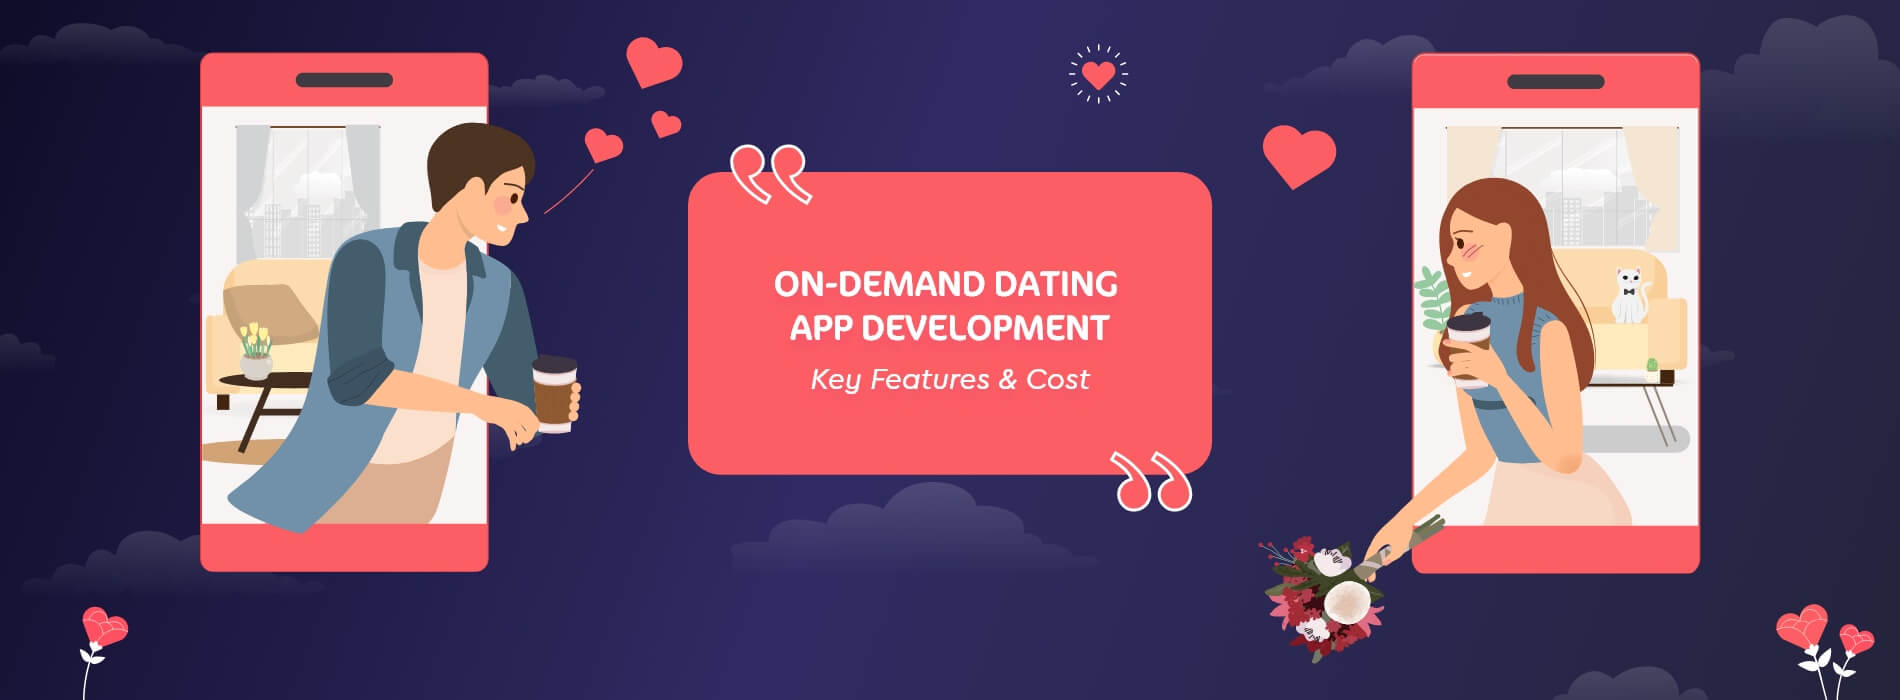 How Much Does It Cost To Develop an Online Dating App?